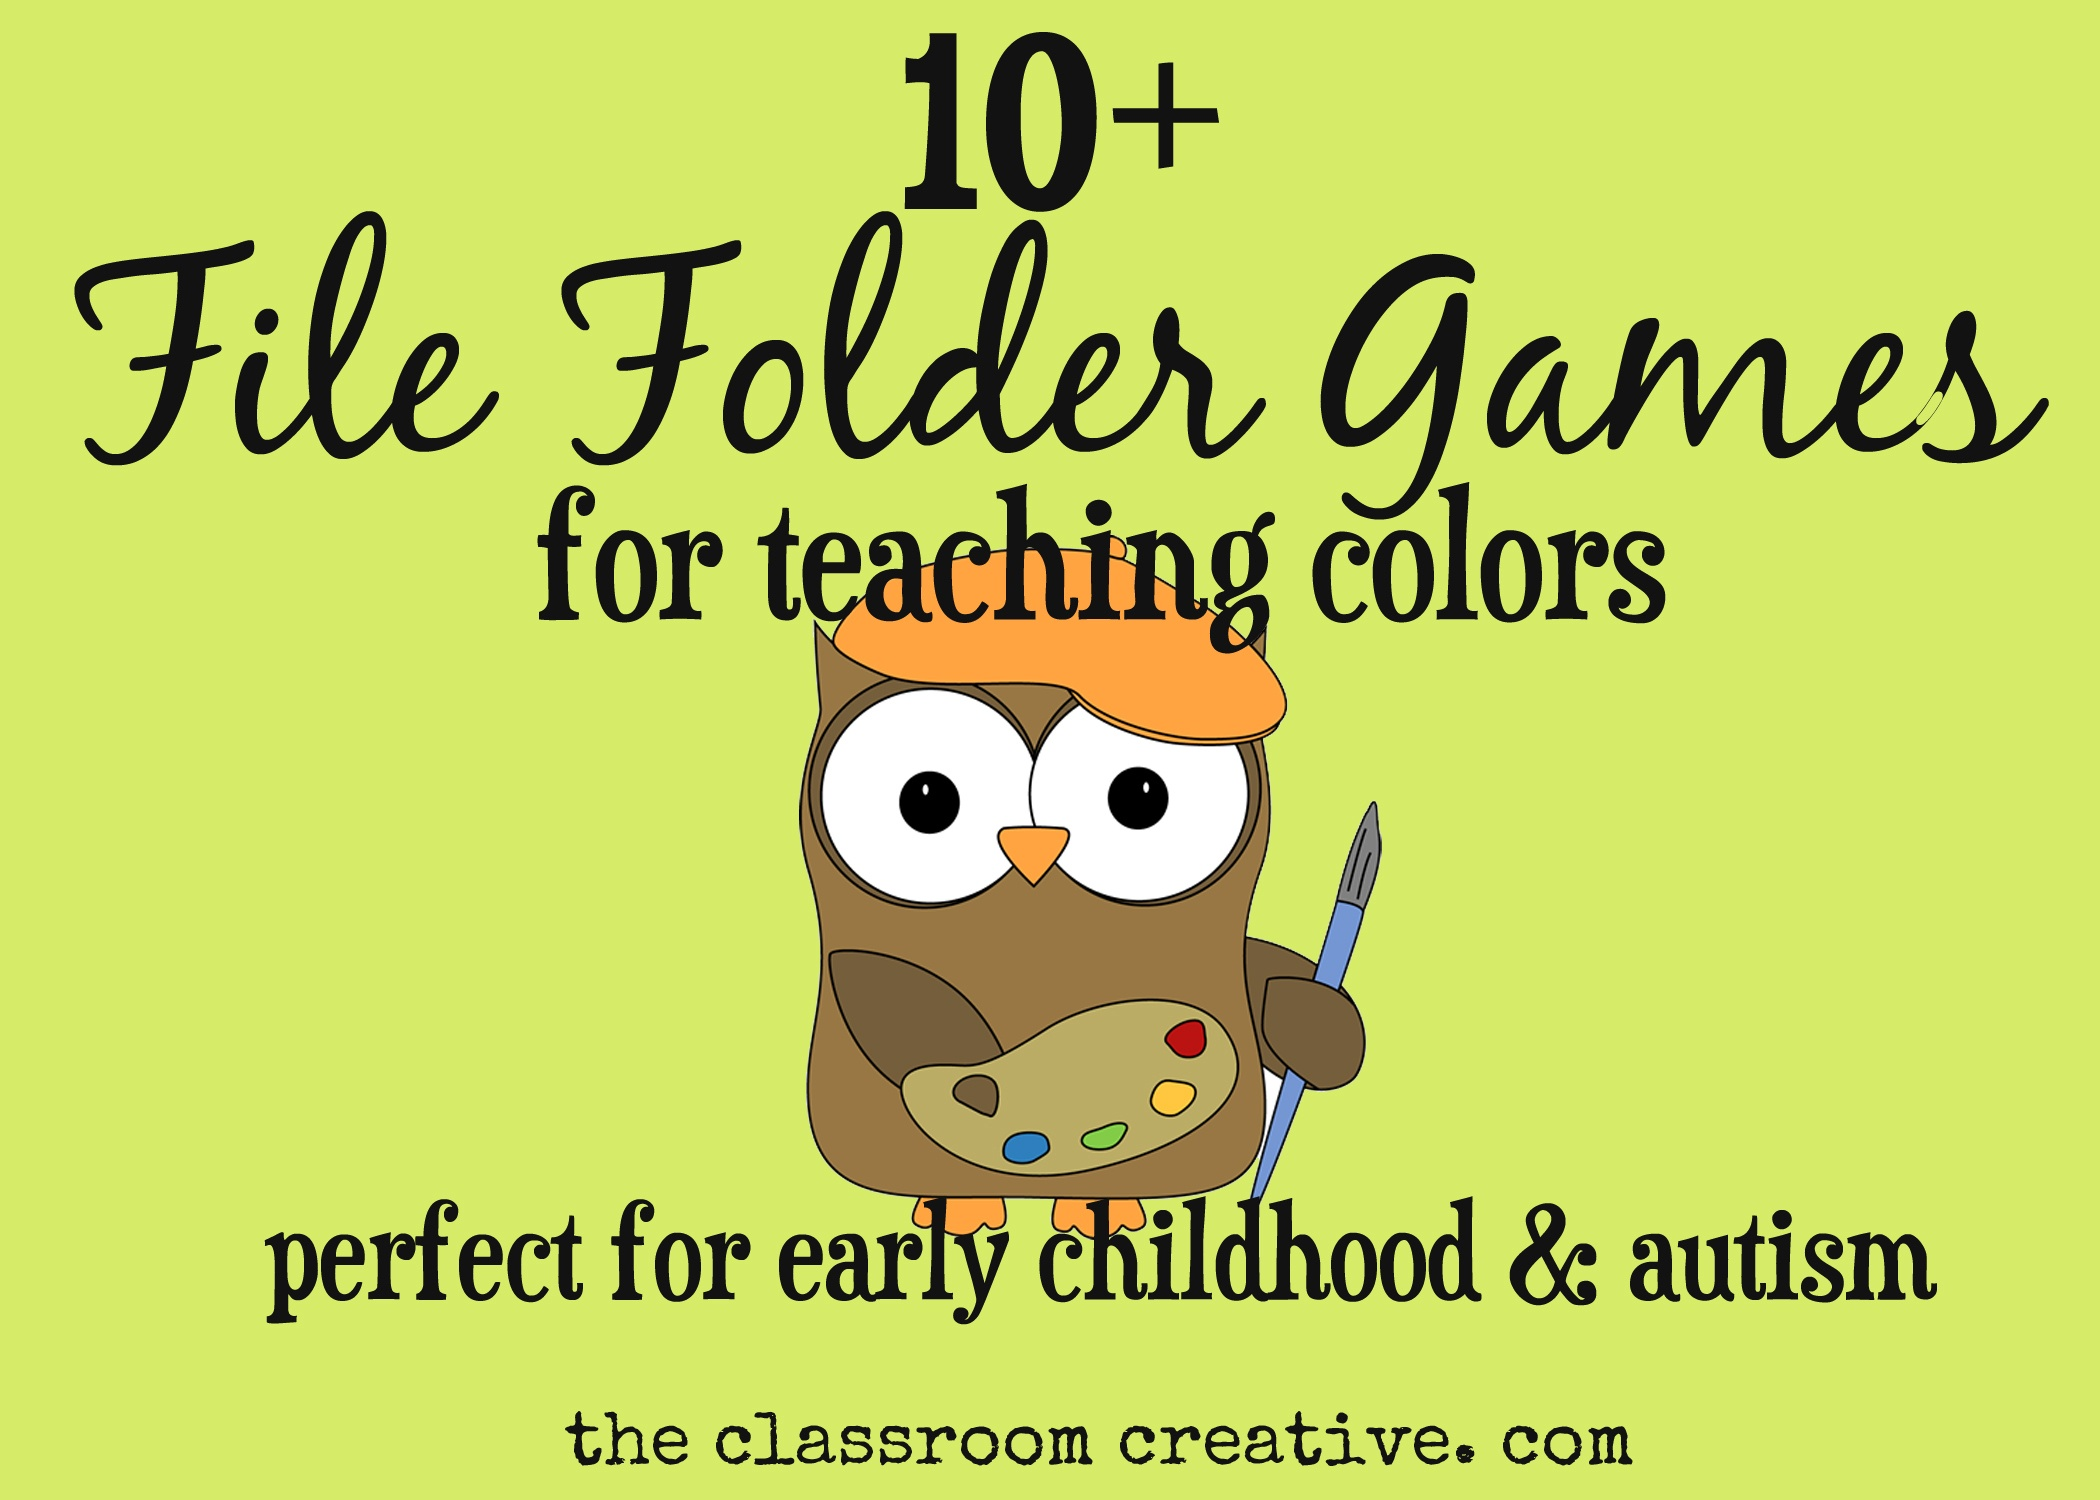 File Folder Games For Teaching Colors - Free Printable File Folder Games